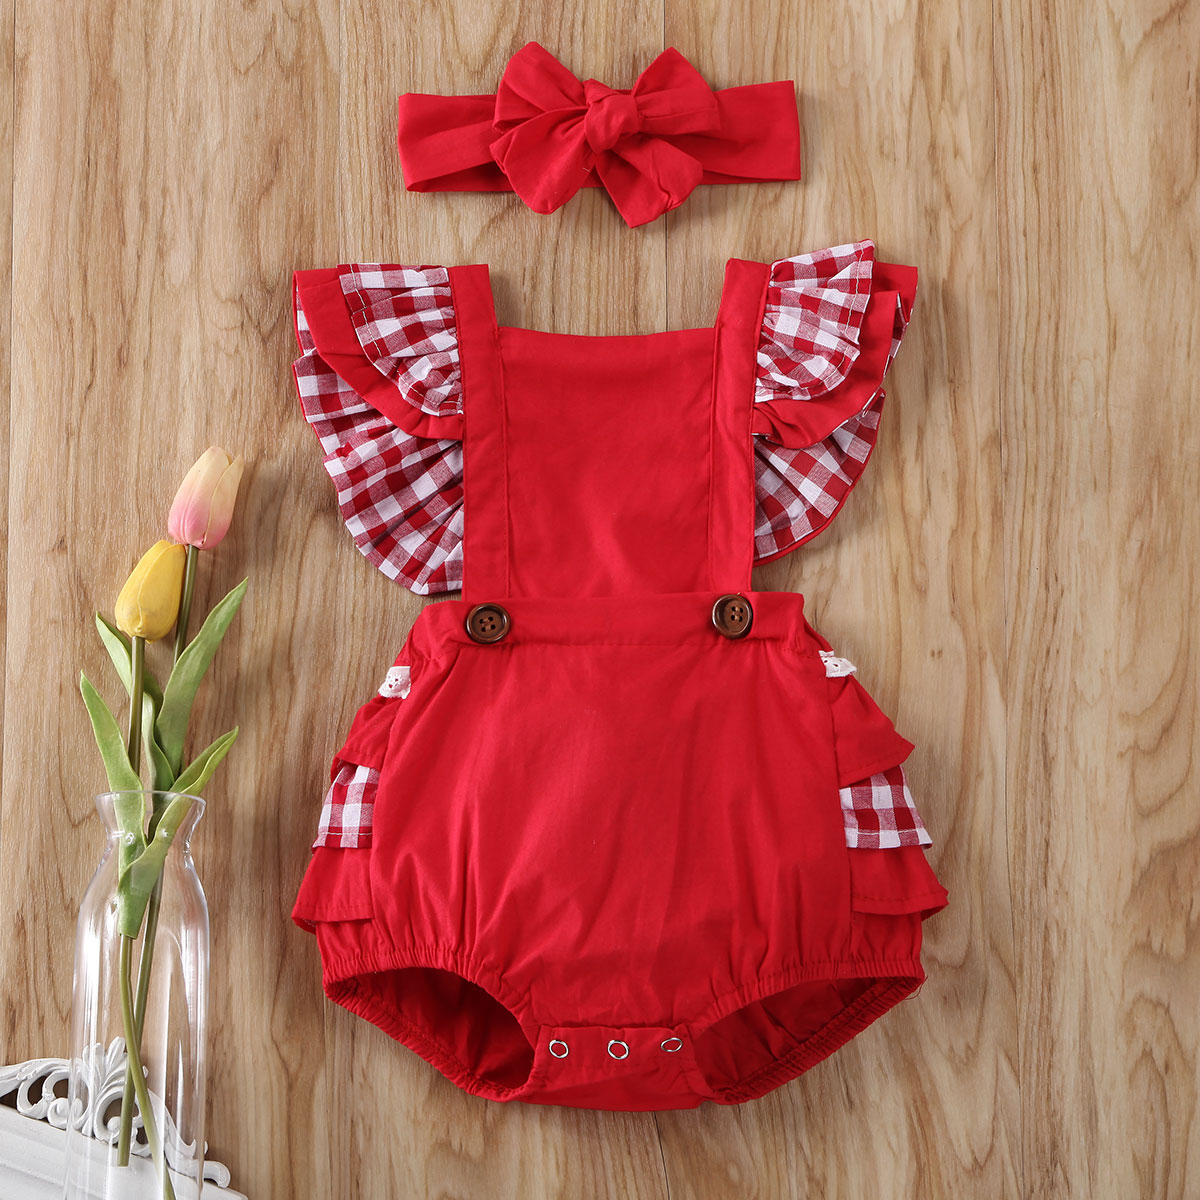 Pudcoco Newborn Baby Girl Clothes Plaids Sleeveless Ruffle Romper Jumpsuit Headband 2Pcs Outfits Cotton Clothes